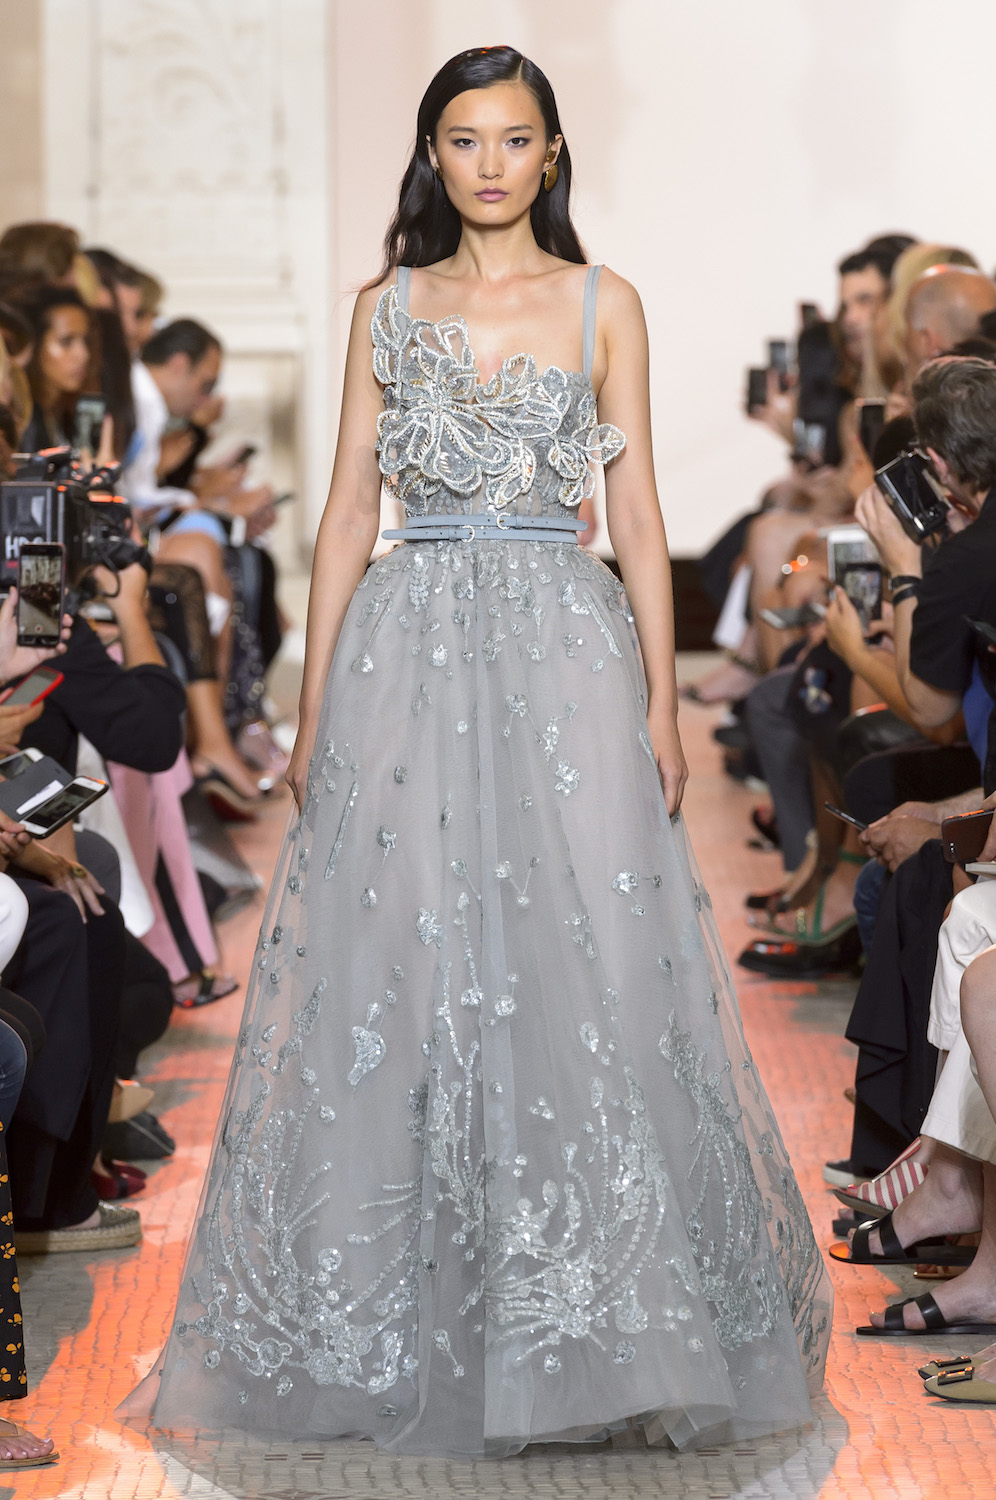 Elie Saab Pays Homage to Gaudí's Architectural Genius for Fall Couture